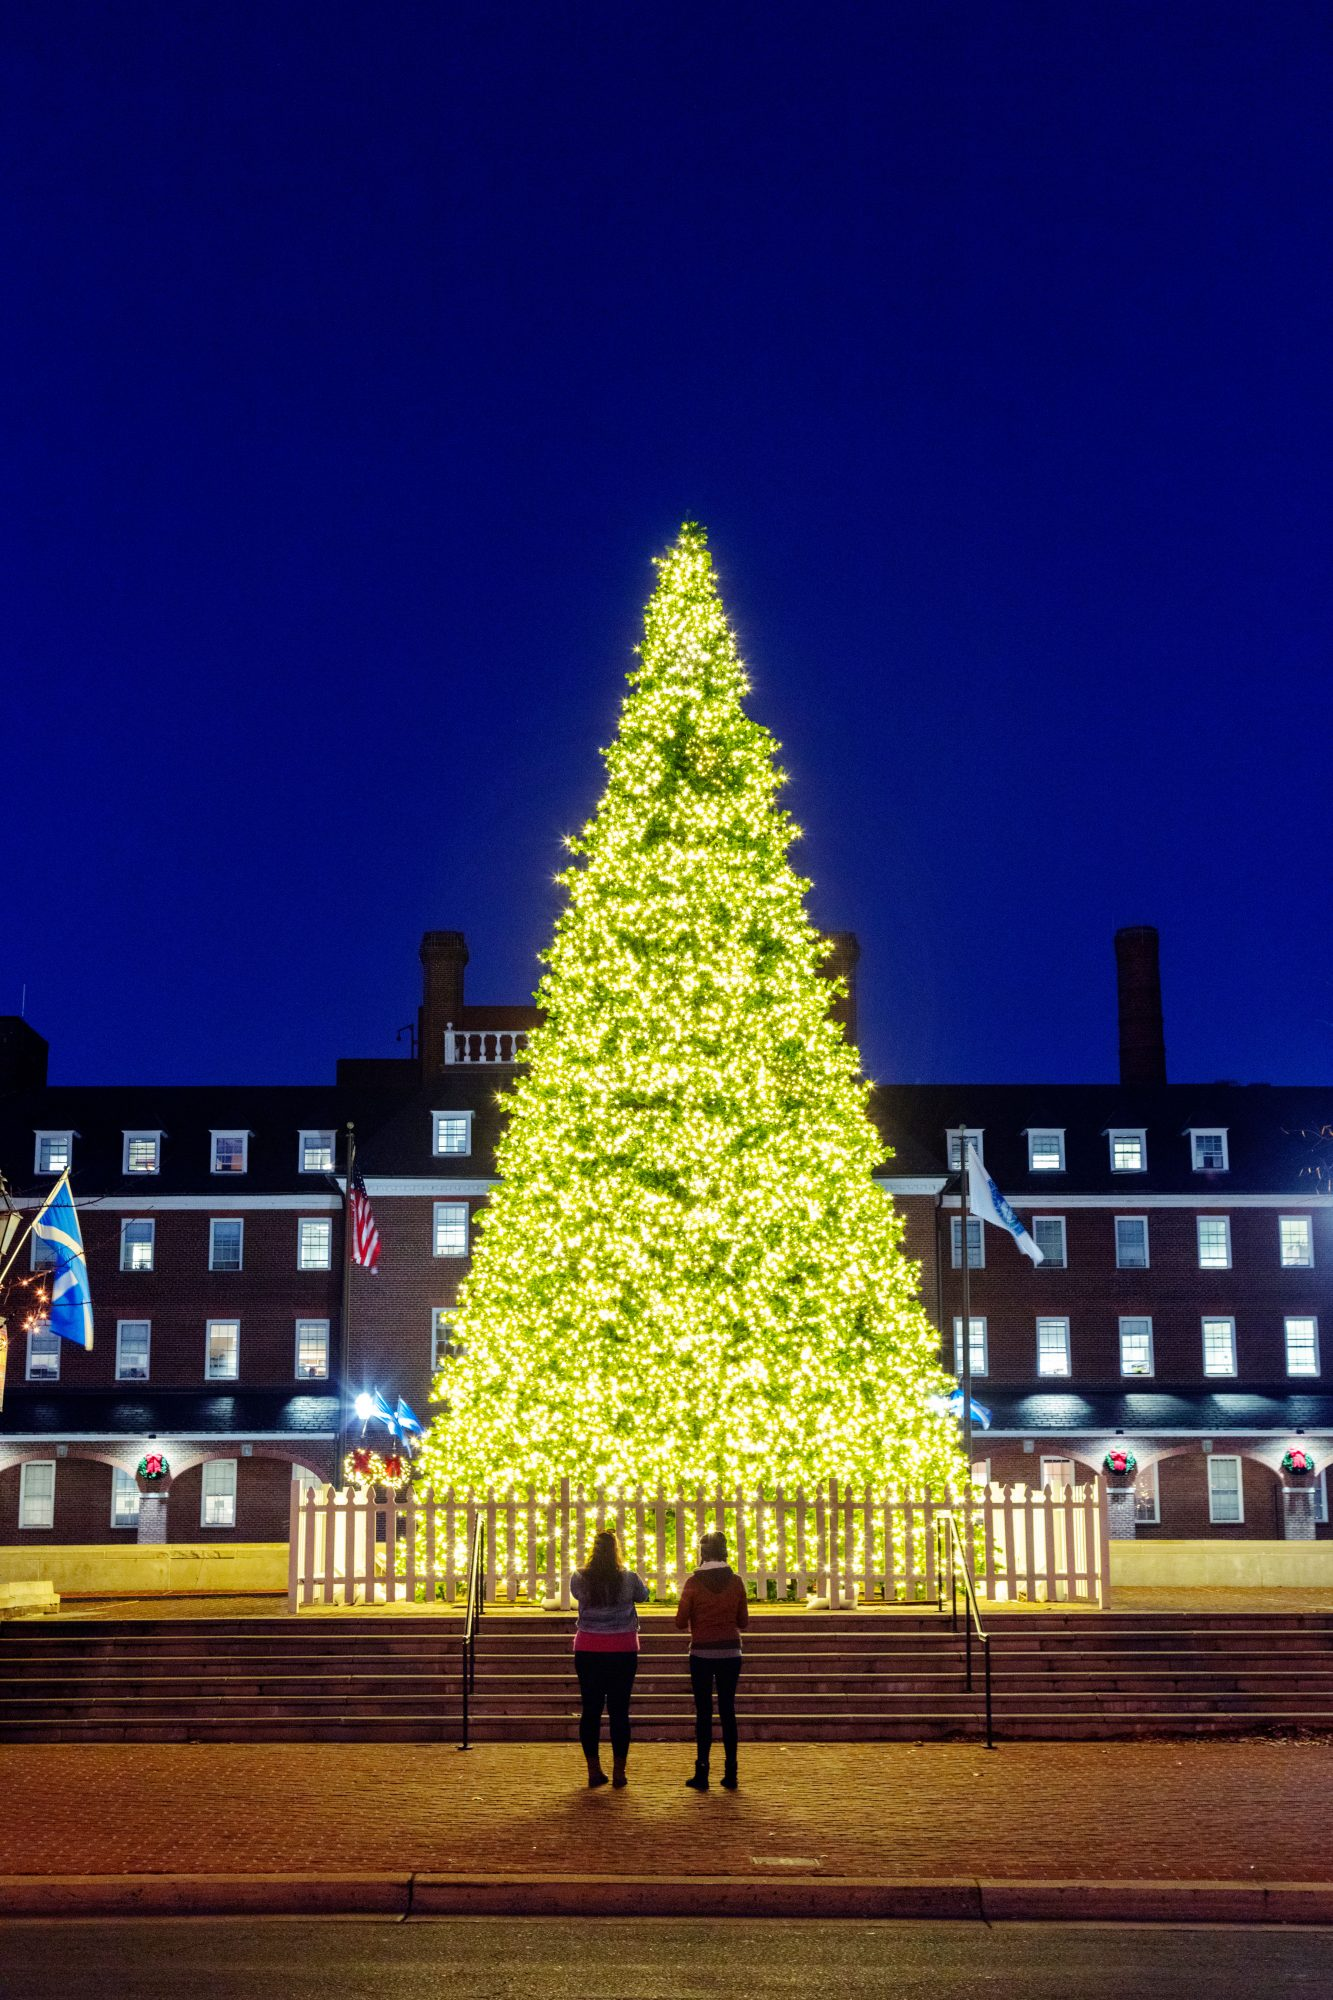 The Christmas tree on Market Square in Alexandria, VA